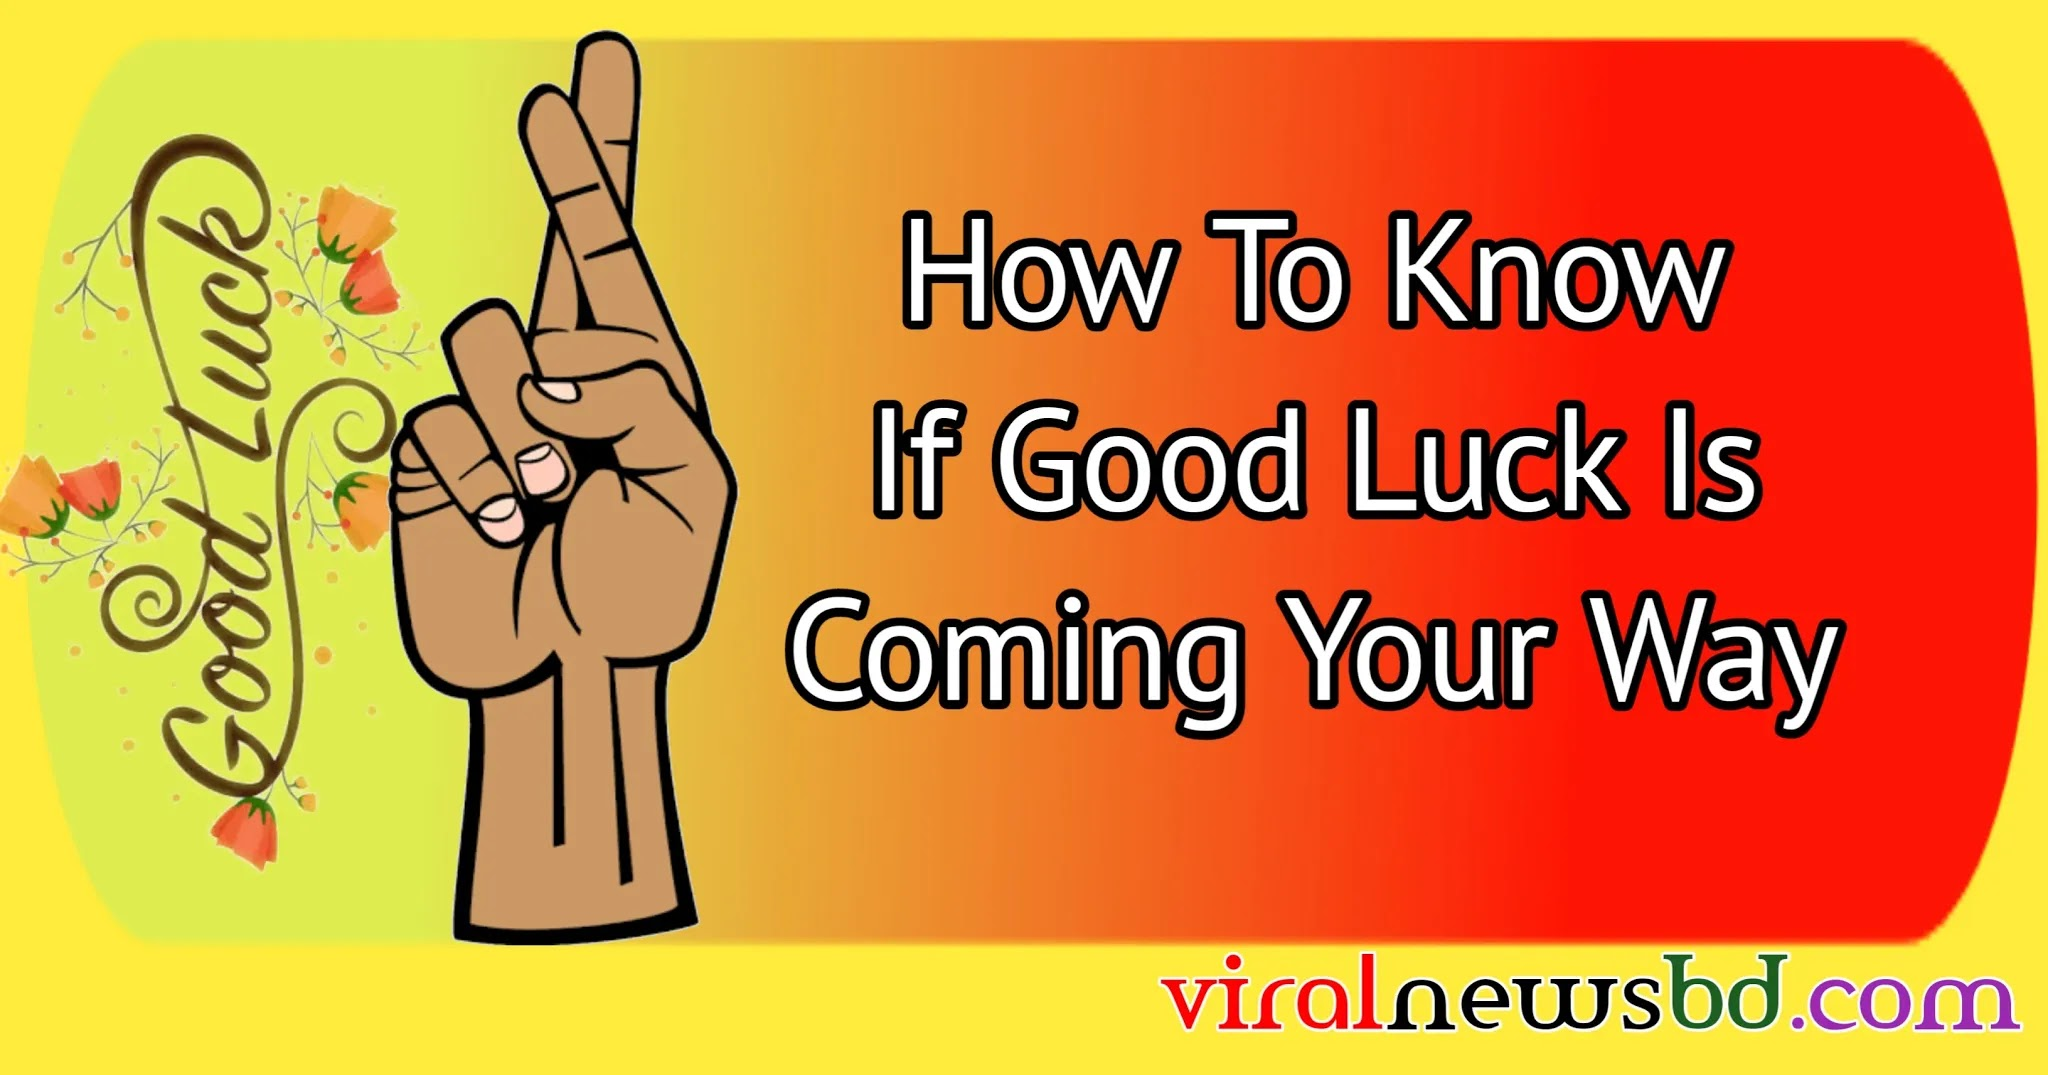 How To Know If Good Luck Is Coming Your Way